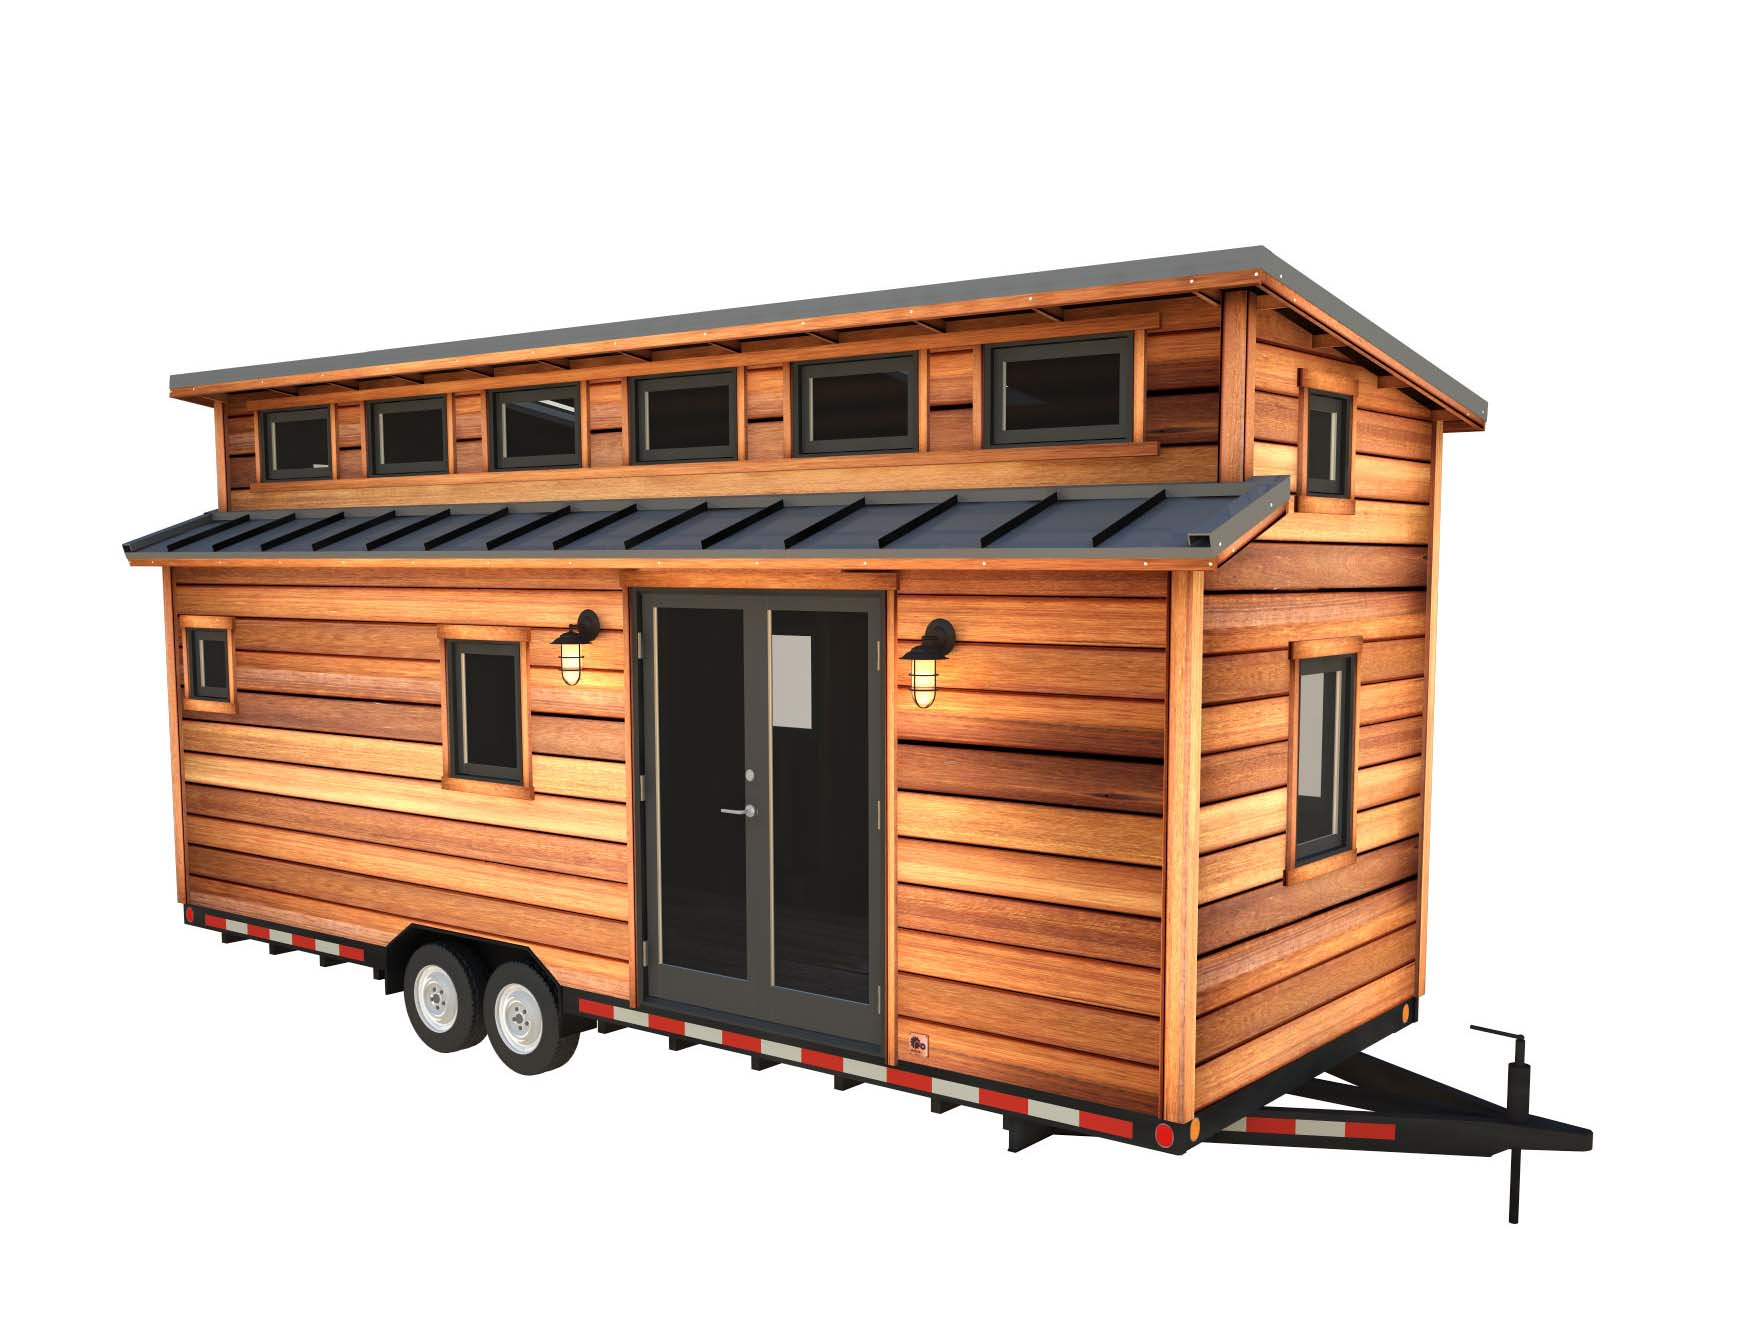 Tremendous The Cider Box Modern Tiny House Plans For Your Home On Wheels Wiring Cloud Ostrrenstrafr09Org